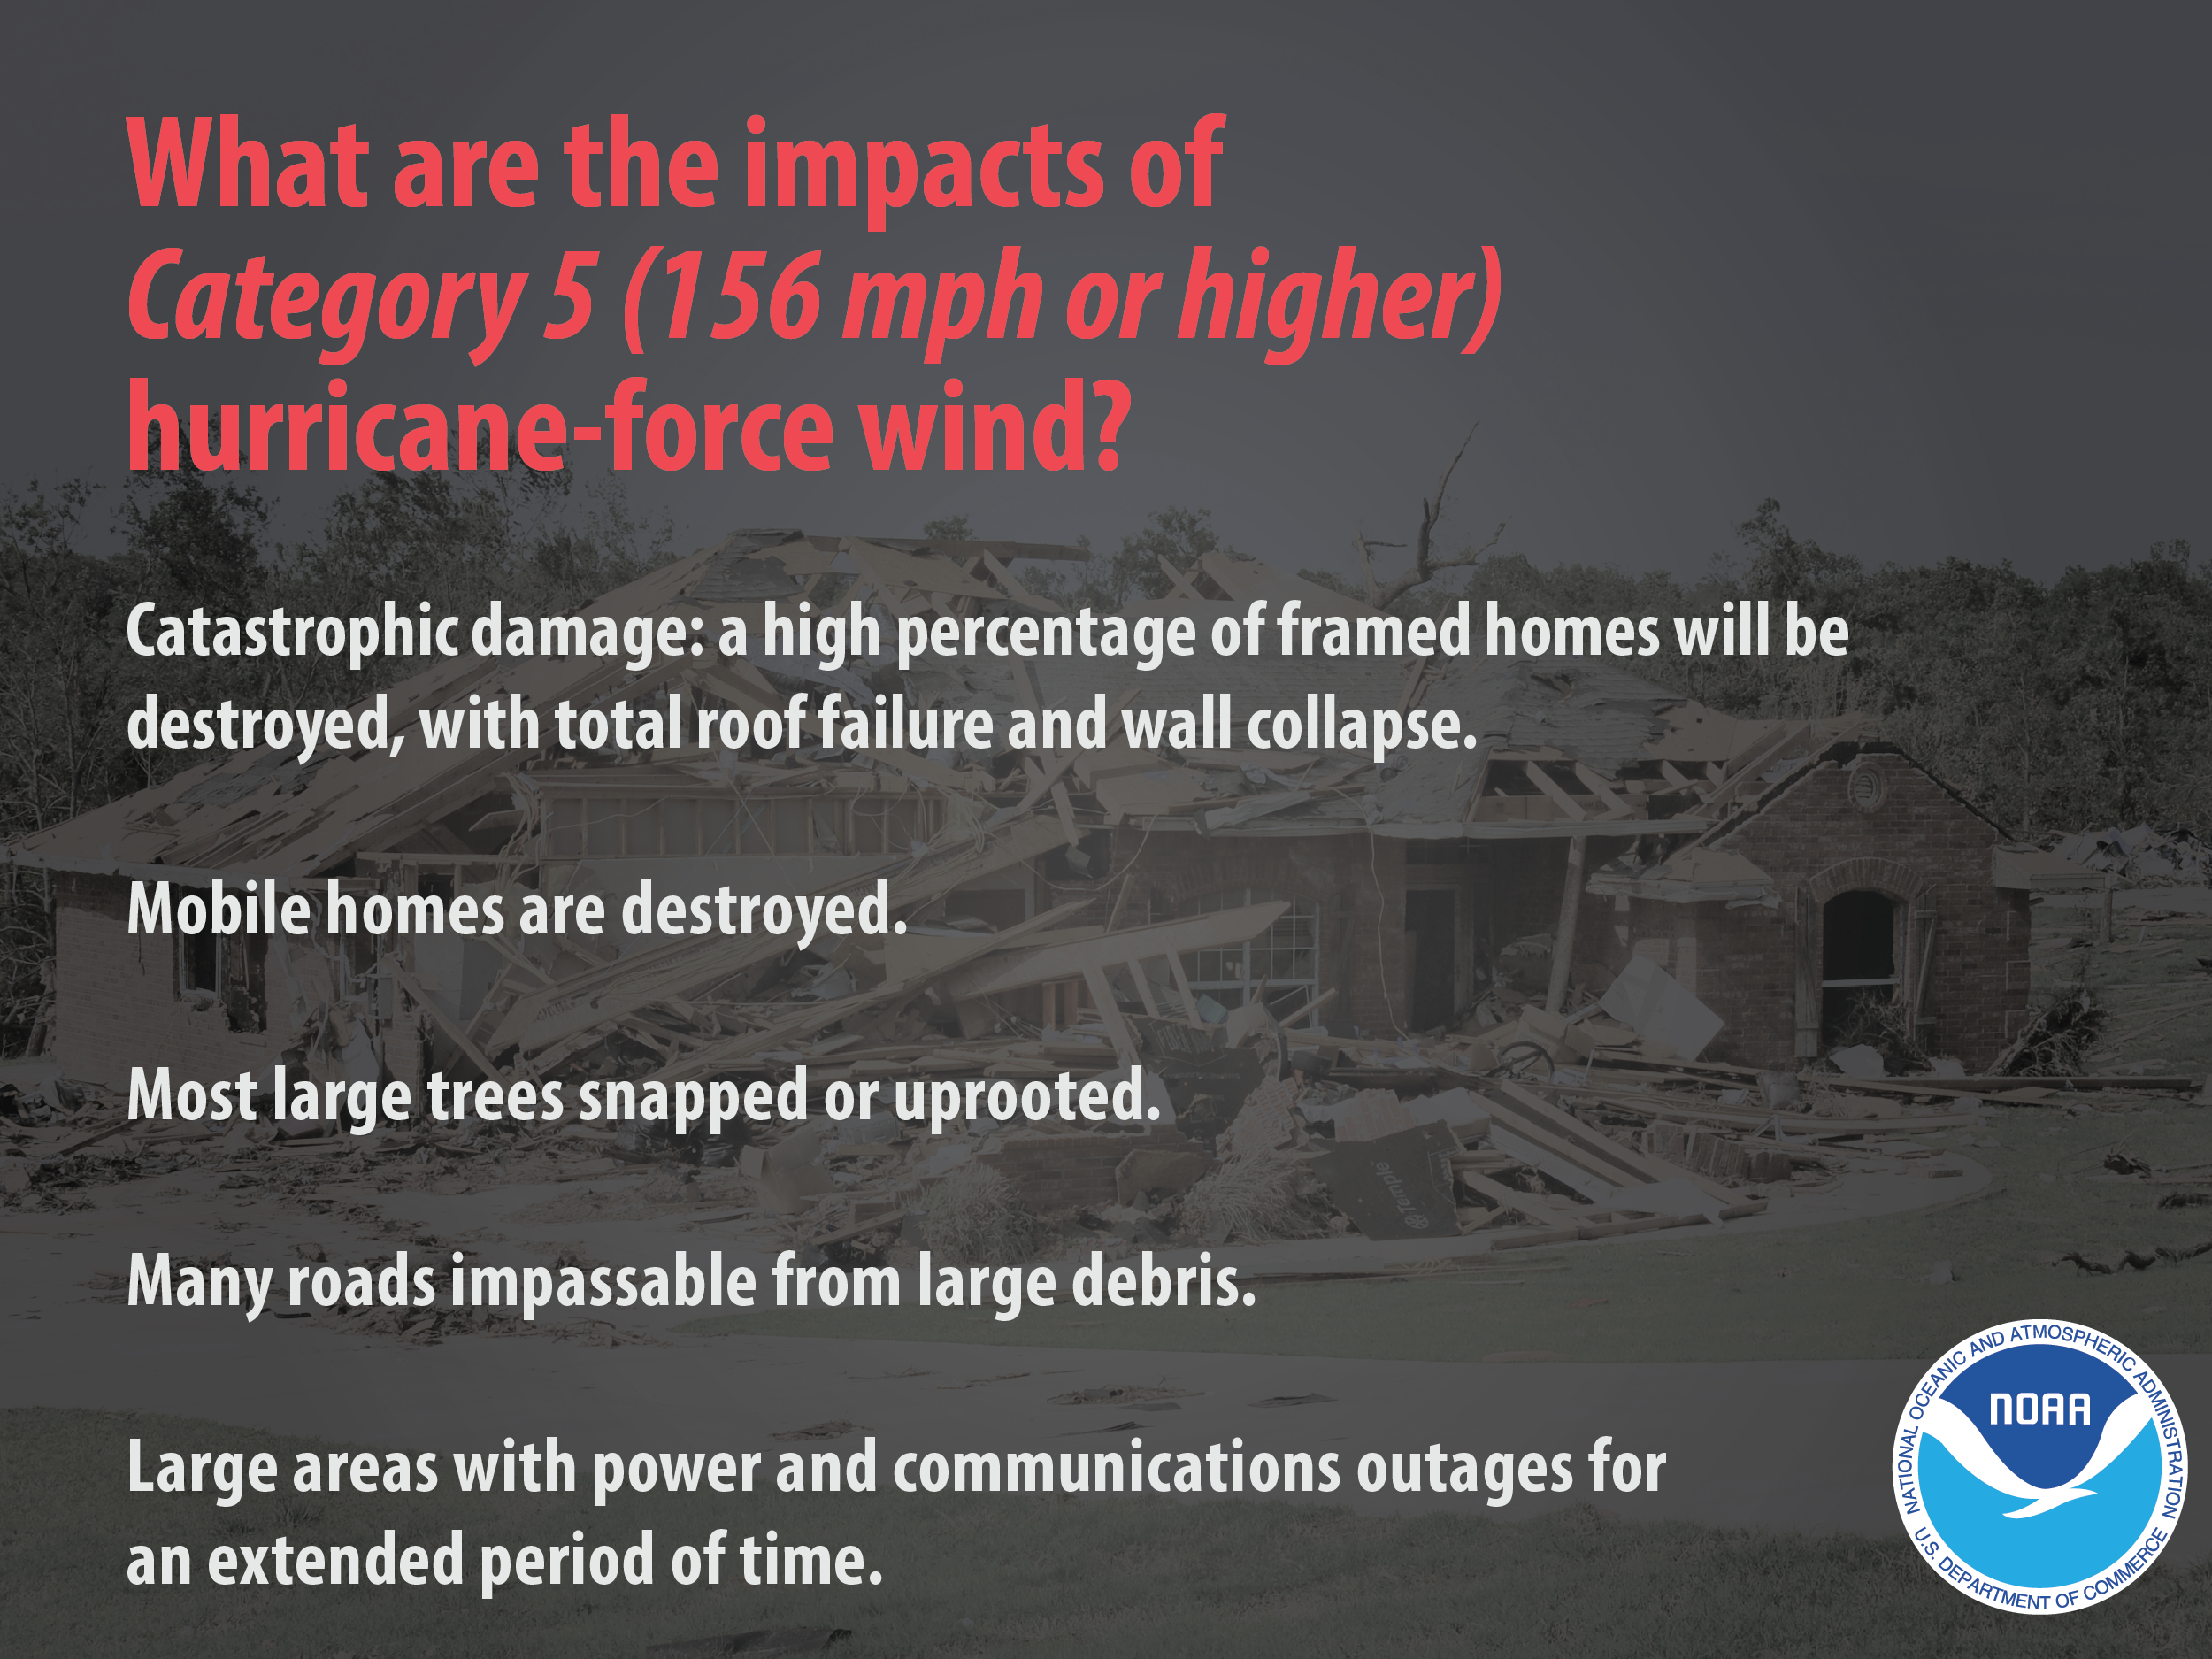 What are the impacts of Category 5 (156 mph or higher) hurricane-force wind? Catastrophic damage: a high percentage of framed homes will be destroyed, with total roof failure and wall collapse. Mobile homes are destroyed. Most large trees snapped or uprooted. Many large roads impassable from large debris. Large areas with power and communication outages for an extended period of time.